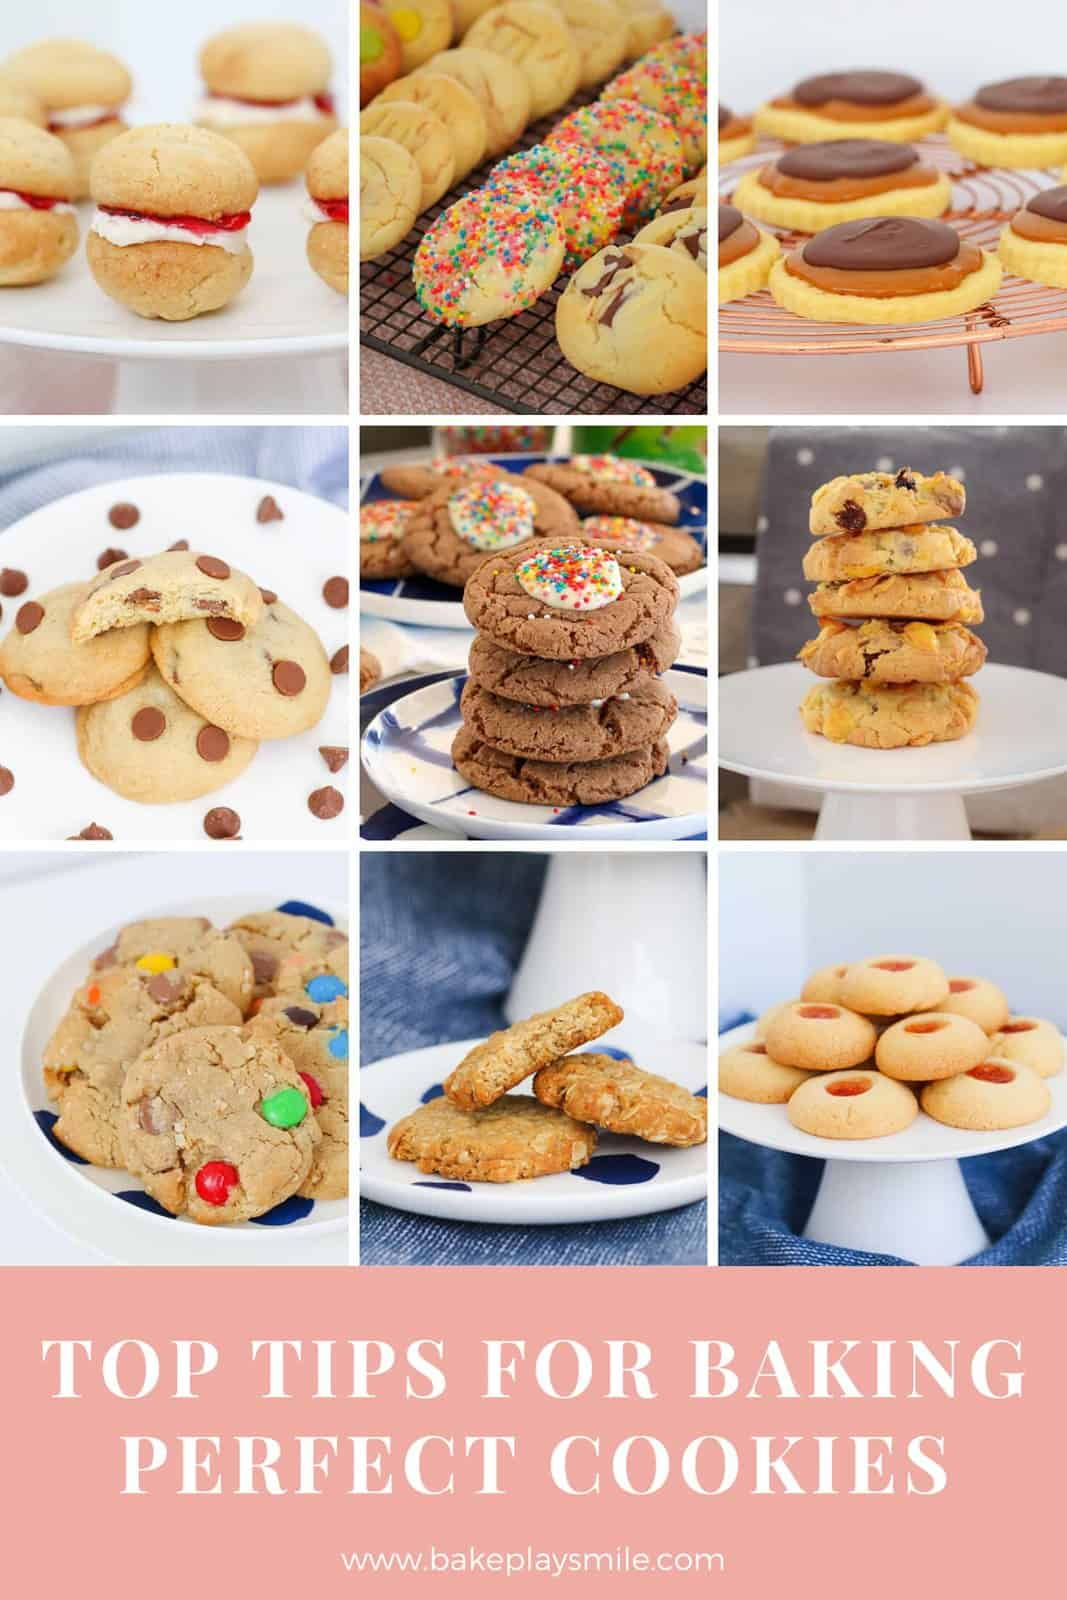 10 Simple Tips For Baking Perfect Cookies Bake Play Smile